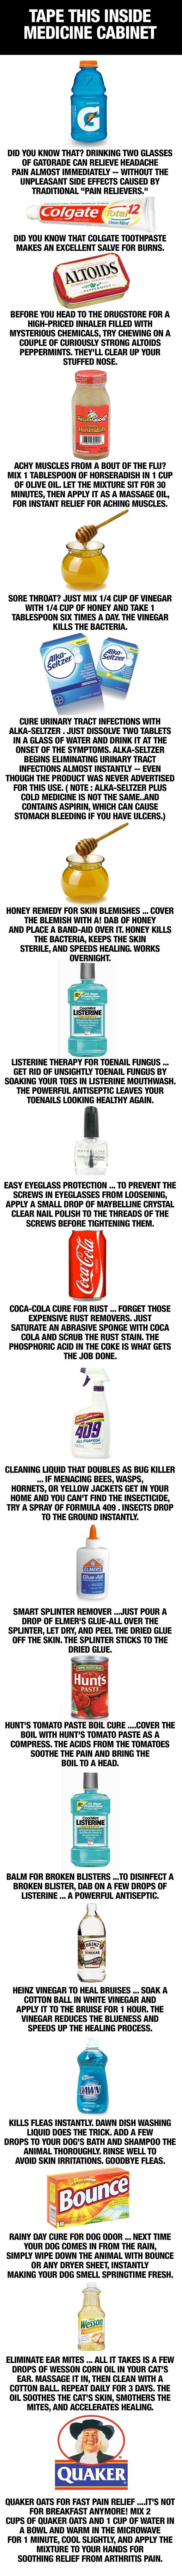 Life hacks. Awesome you can use this instead of buying expensive treatment stuff!